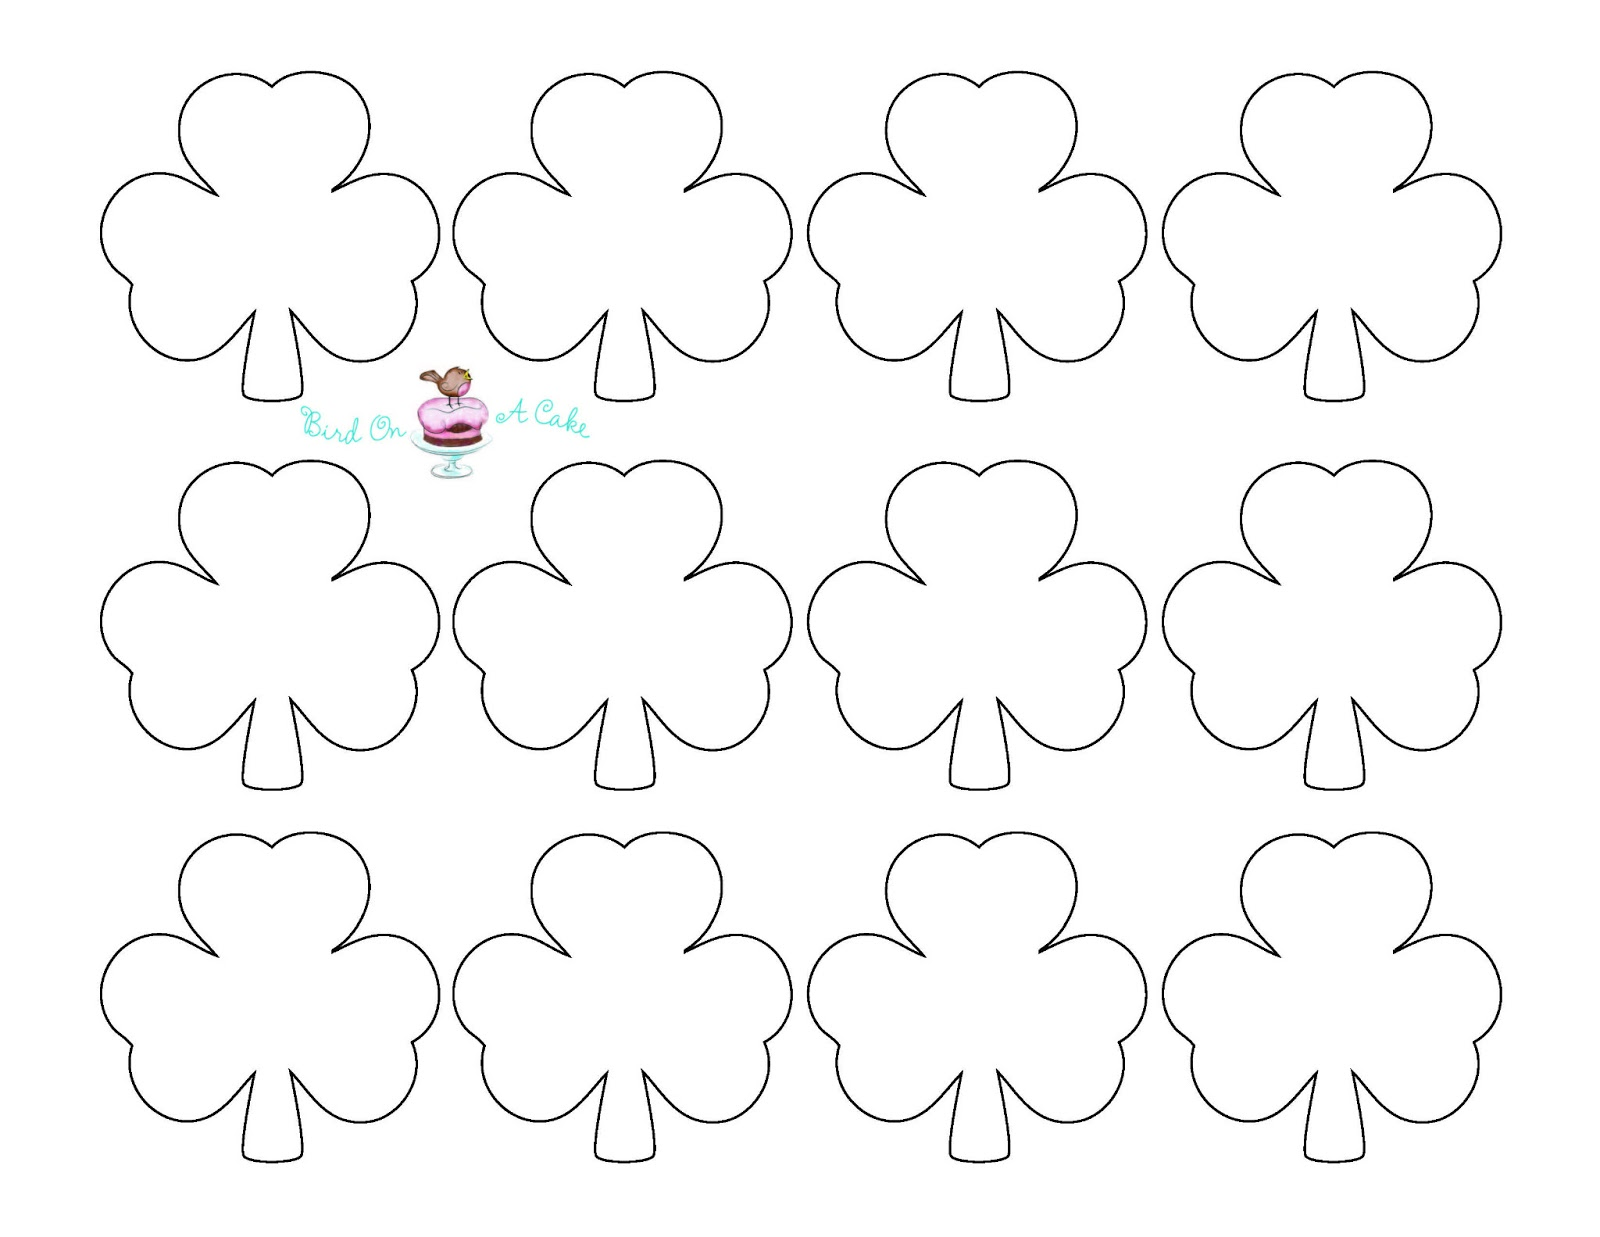 Astounding image inside shamrock template printable